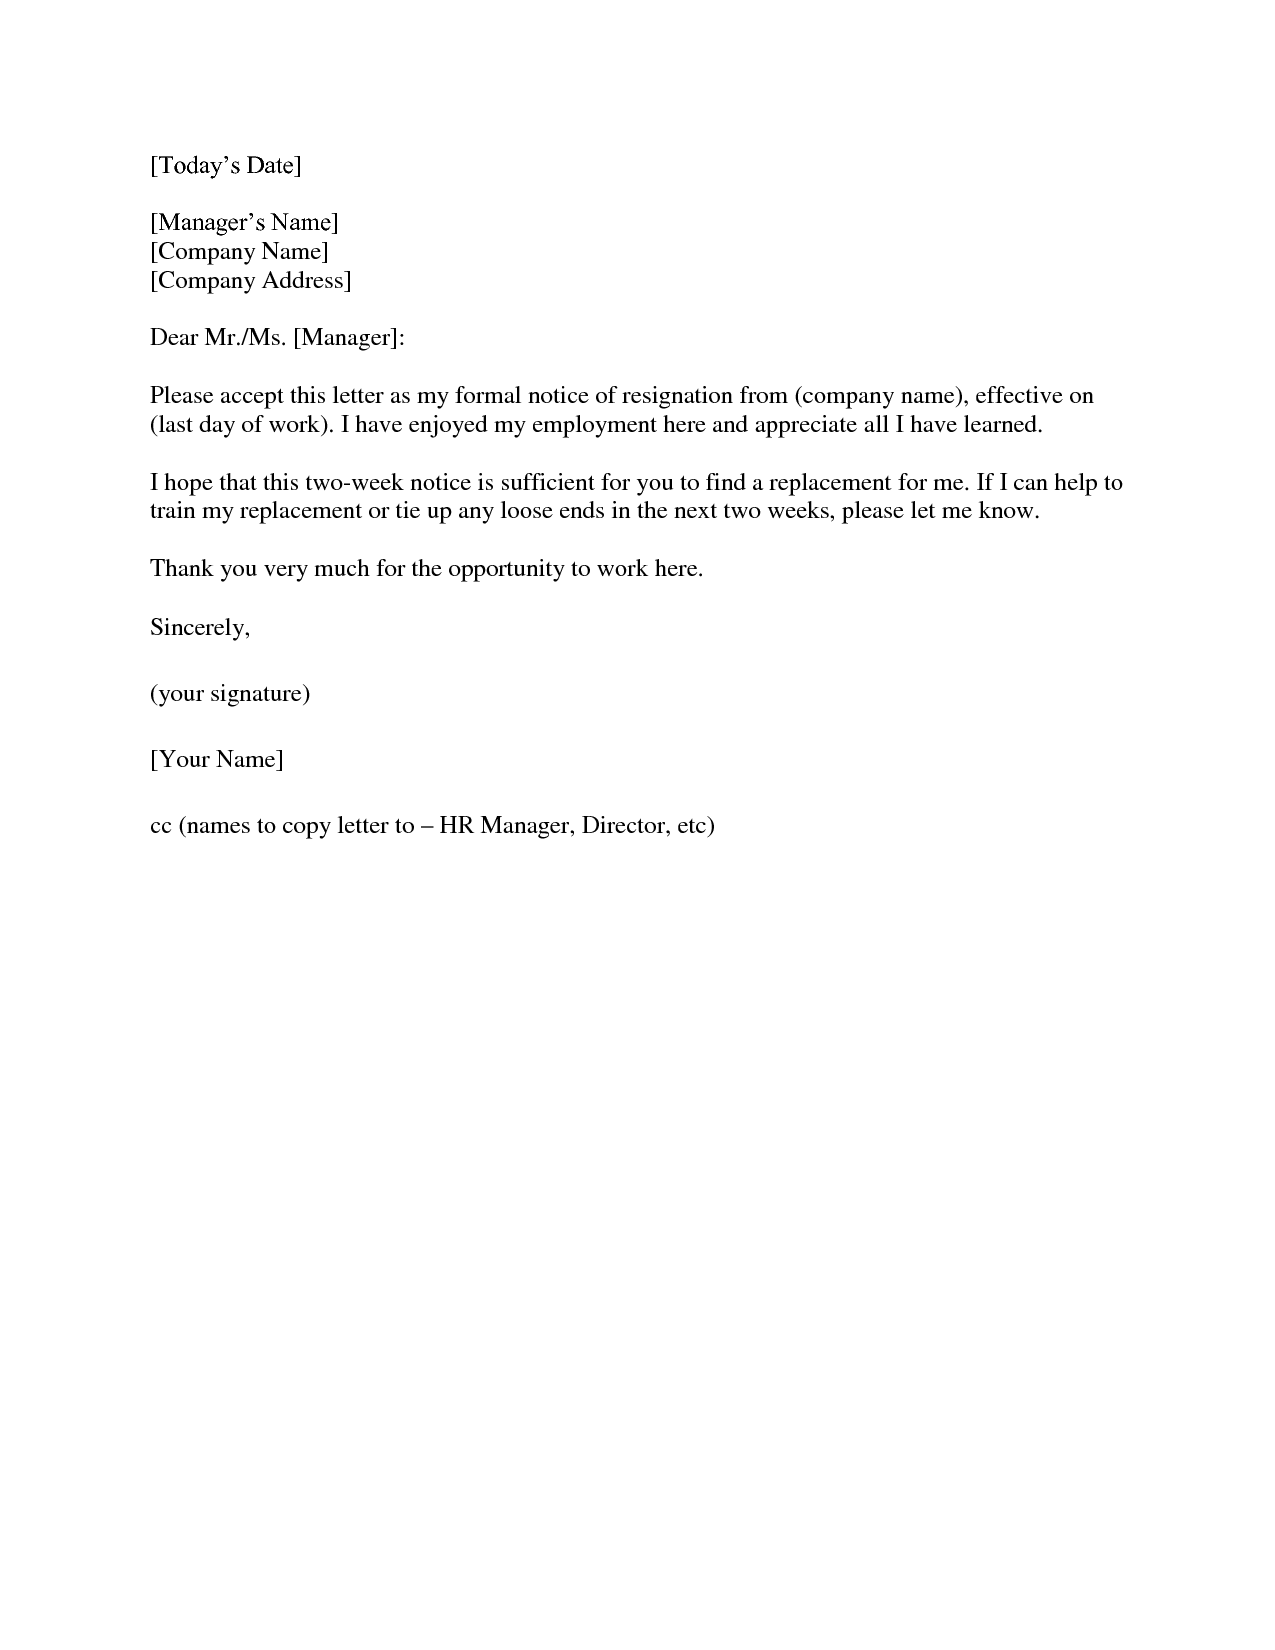 Resignation Letter 2 Week Notice WOW Image Results